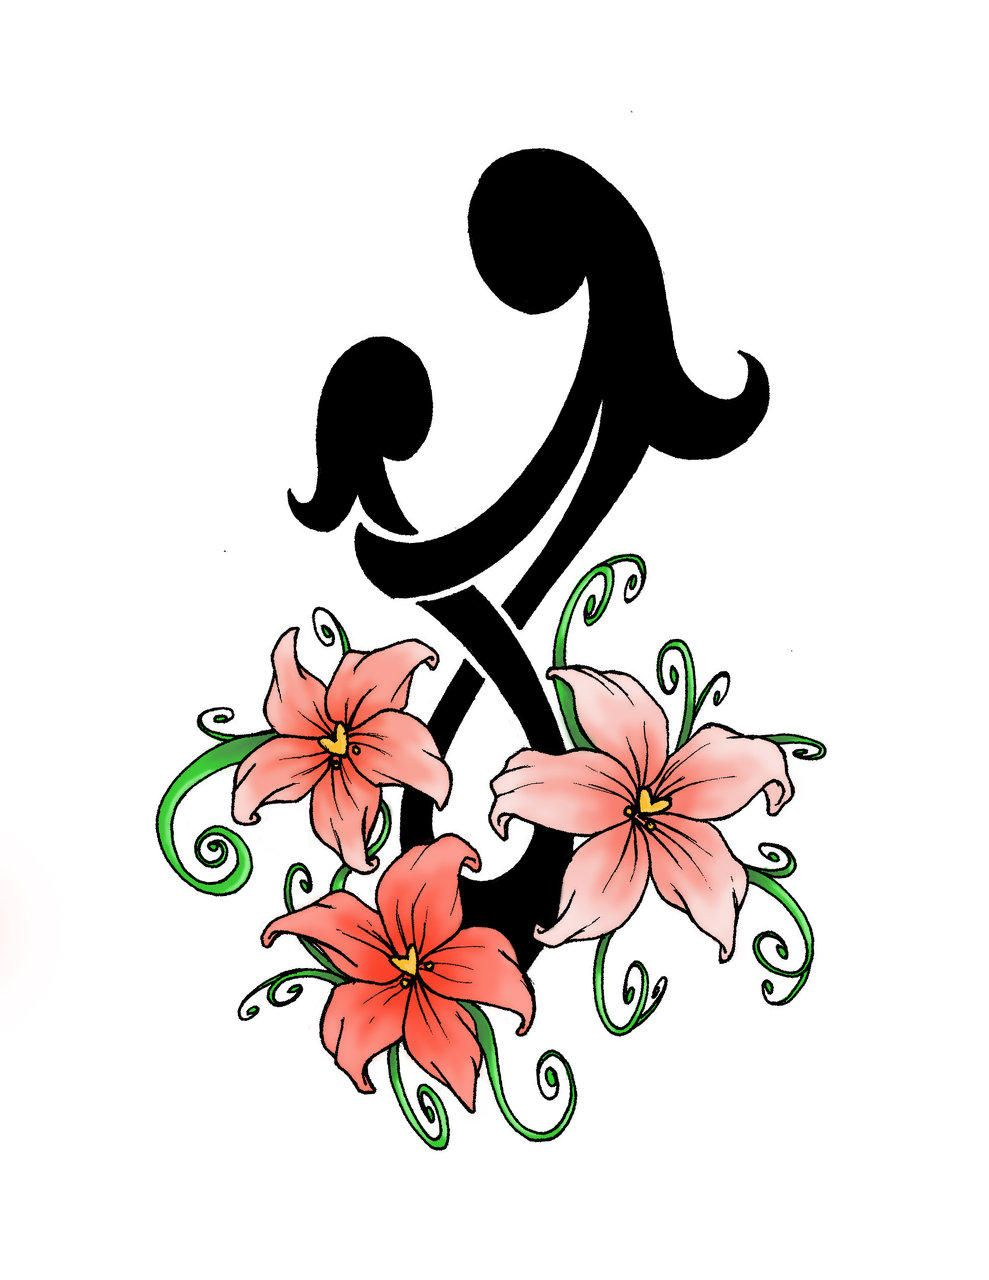 Small Mother Daughter Tattoos Skyhivebusinesscardfront2 Copy